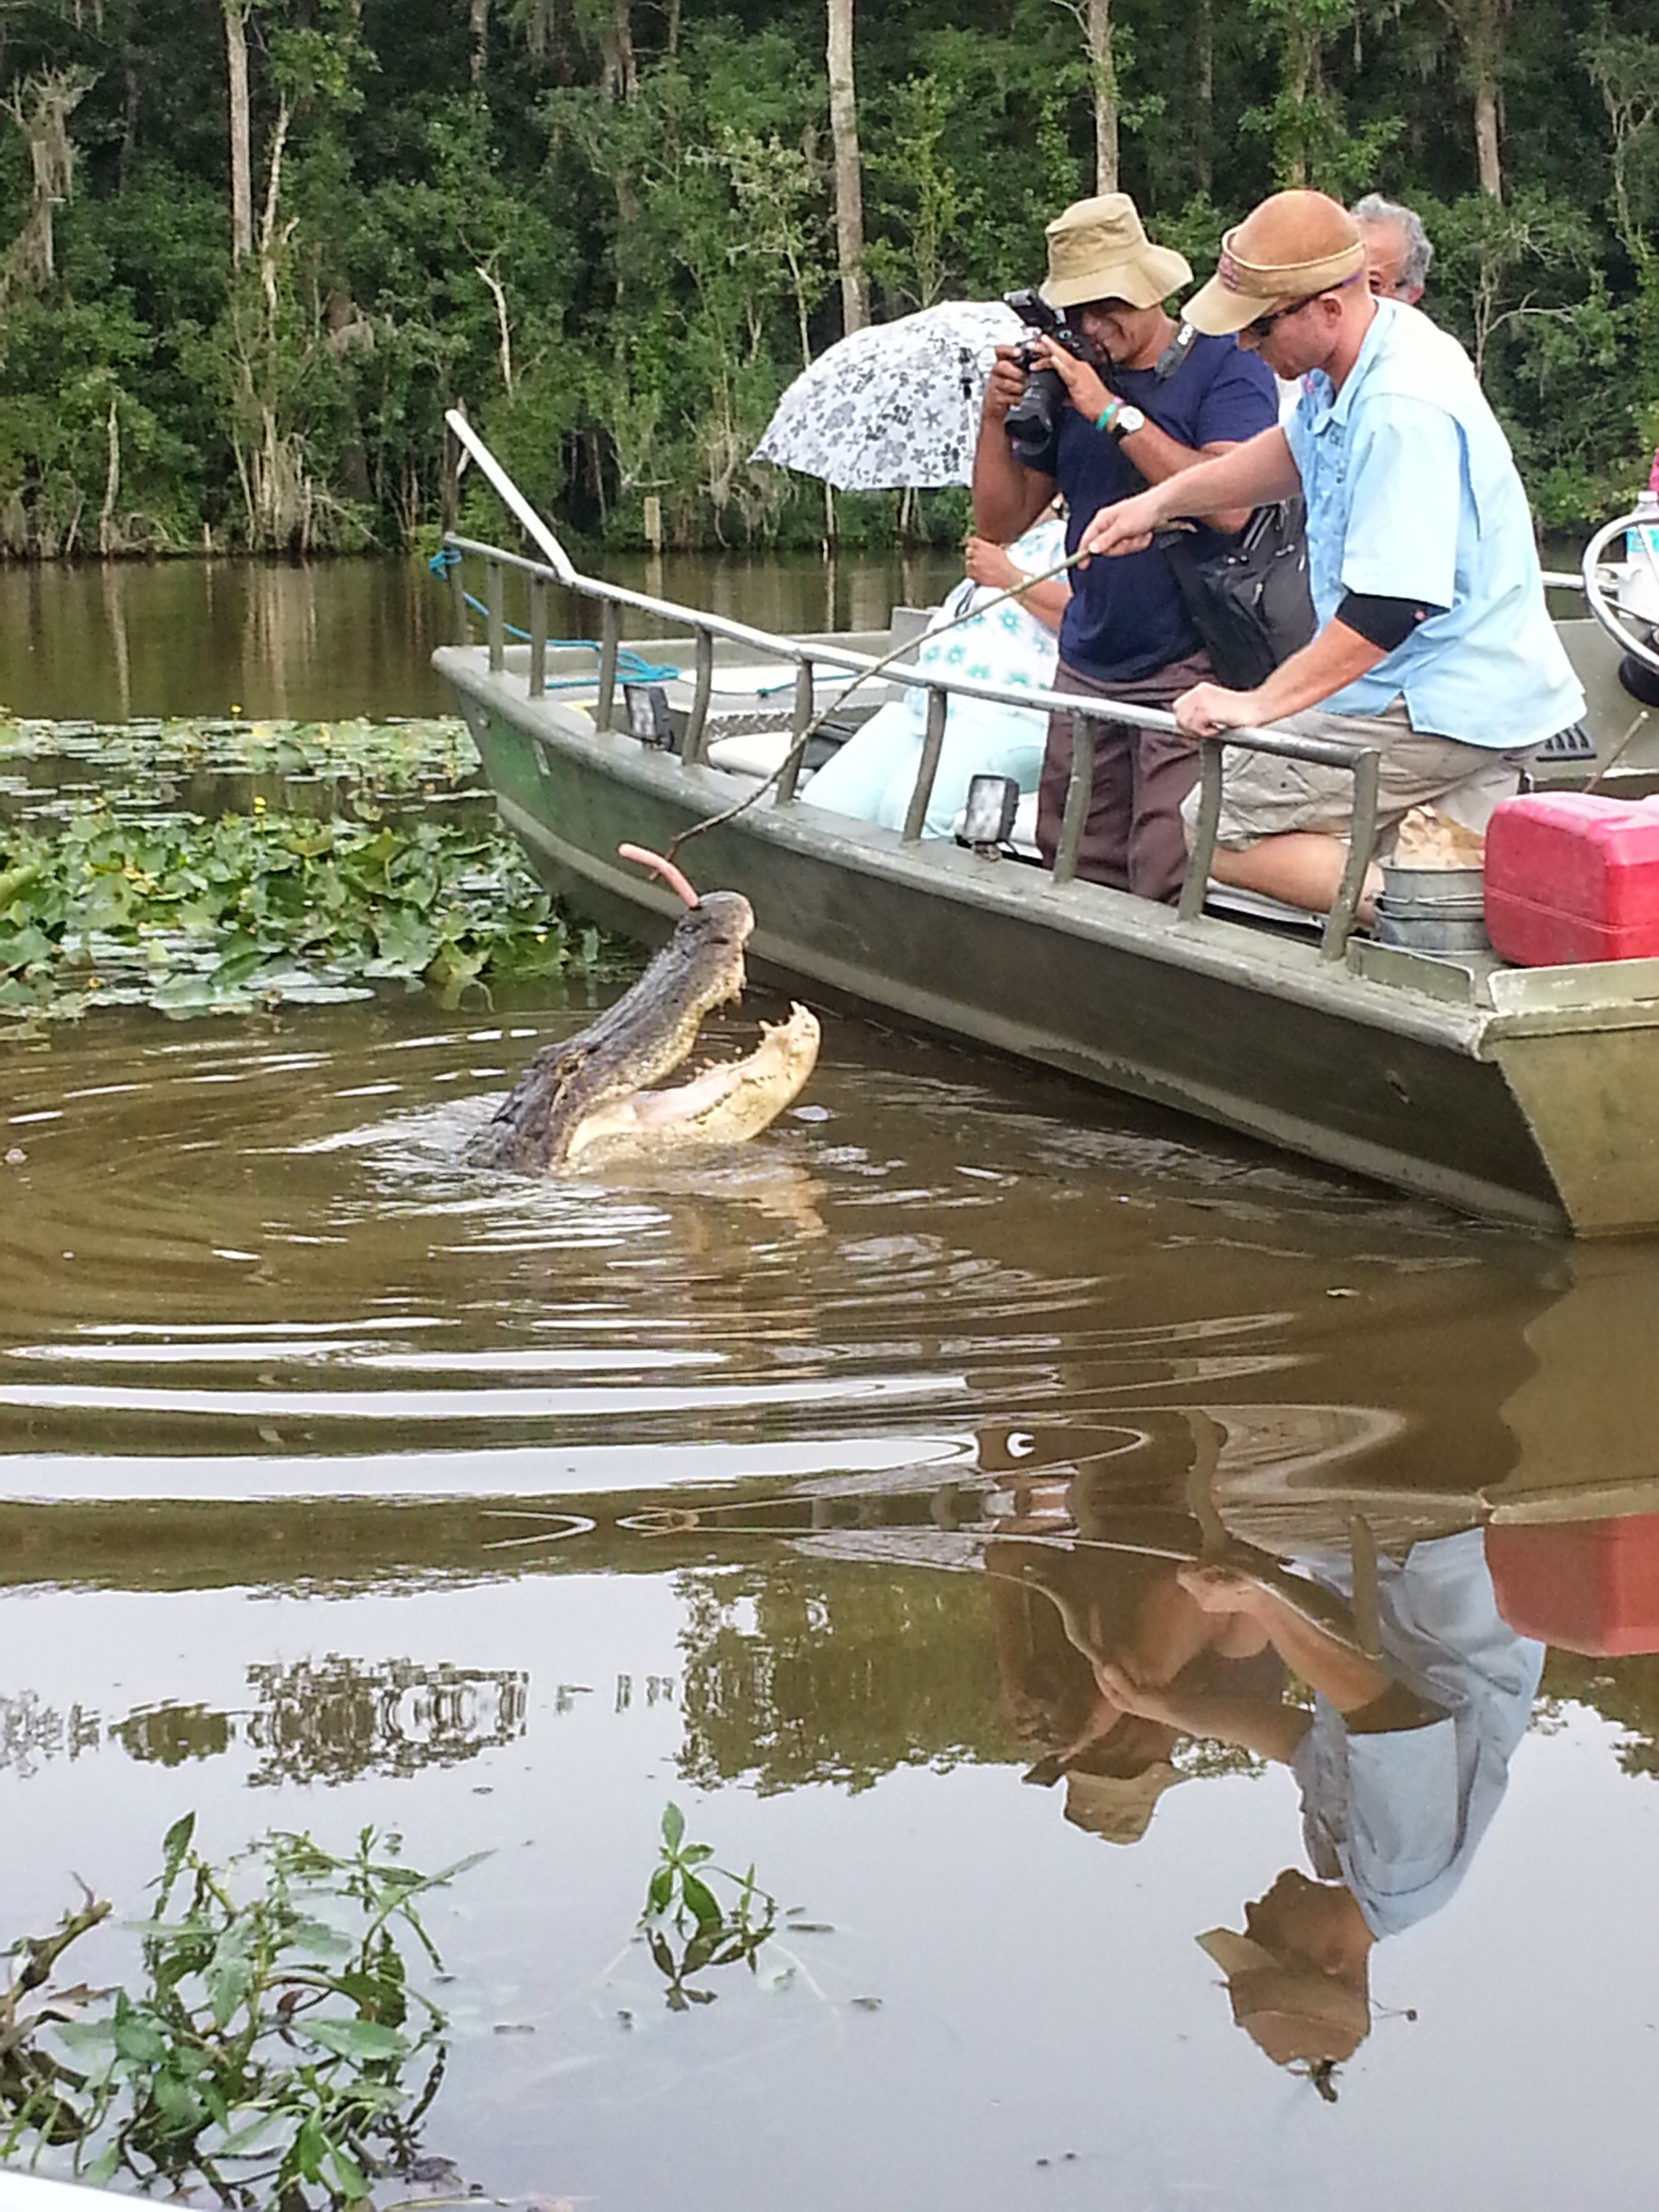 See! Like i'm sayin.... These gators in New Orleans put on a show! I got my monies worth!